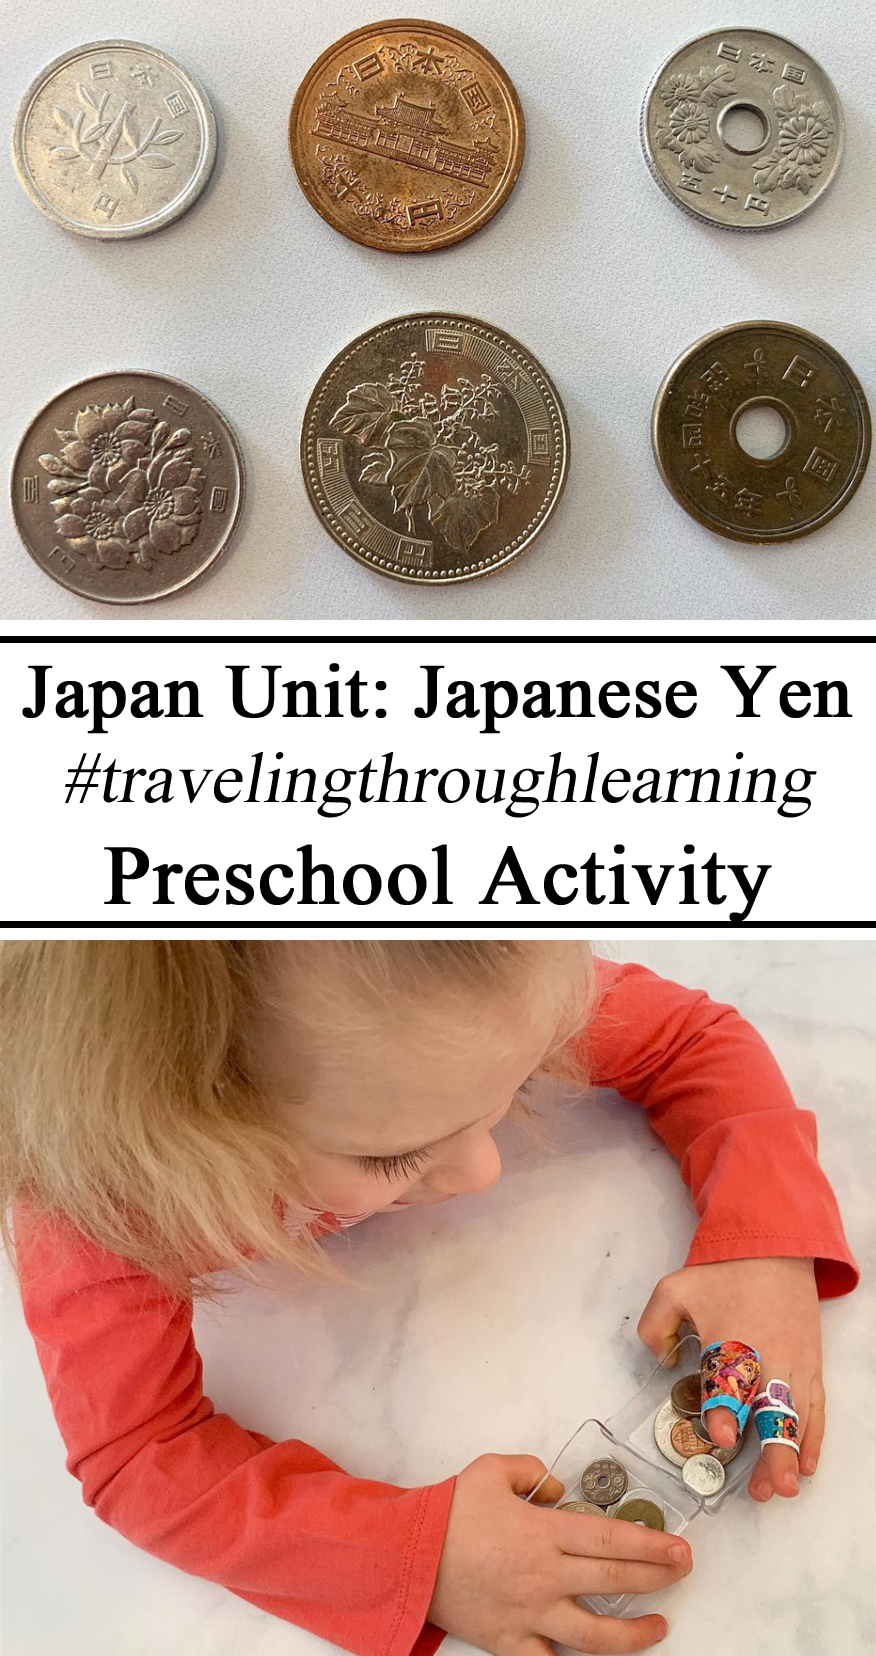 Japan Yen, Japanese, Currency, Money, Coins, Comparing, Preschool, Travelingthroughlearning, Culture, Global Citizens, Homeschool, STEM Challenge, Floating money, Coins, water tension, Alluminum, Preschool, Montessori, Counting, Learning, Count,